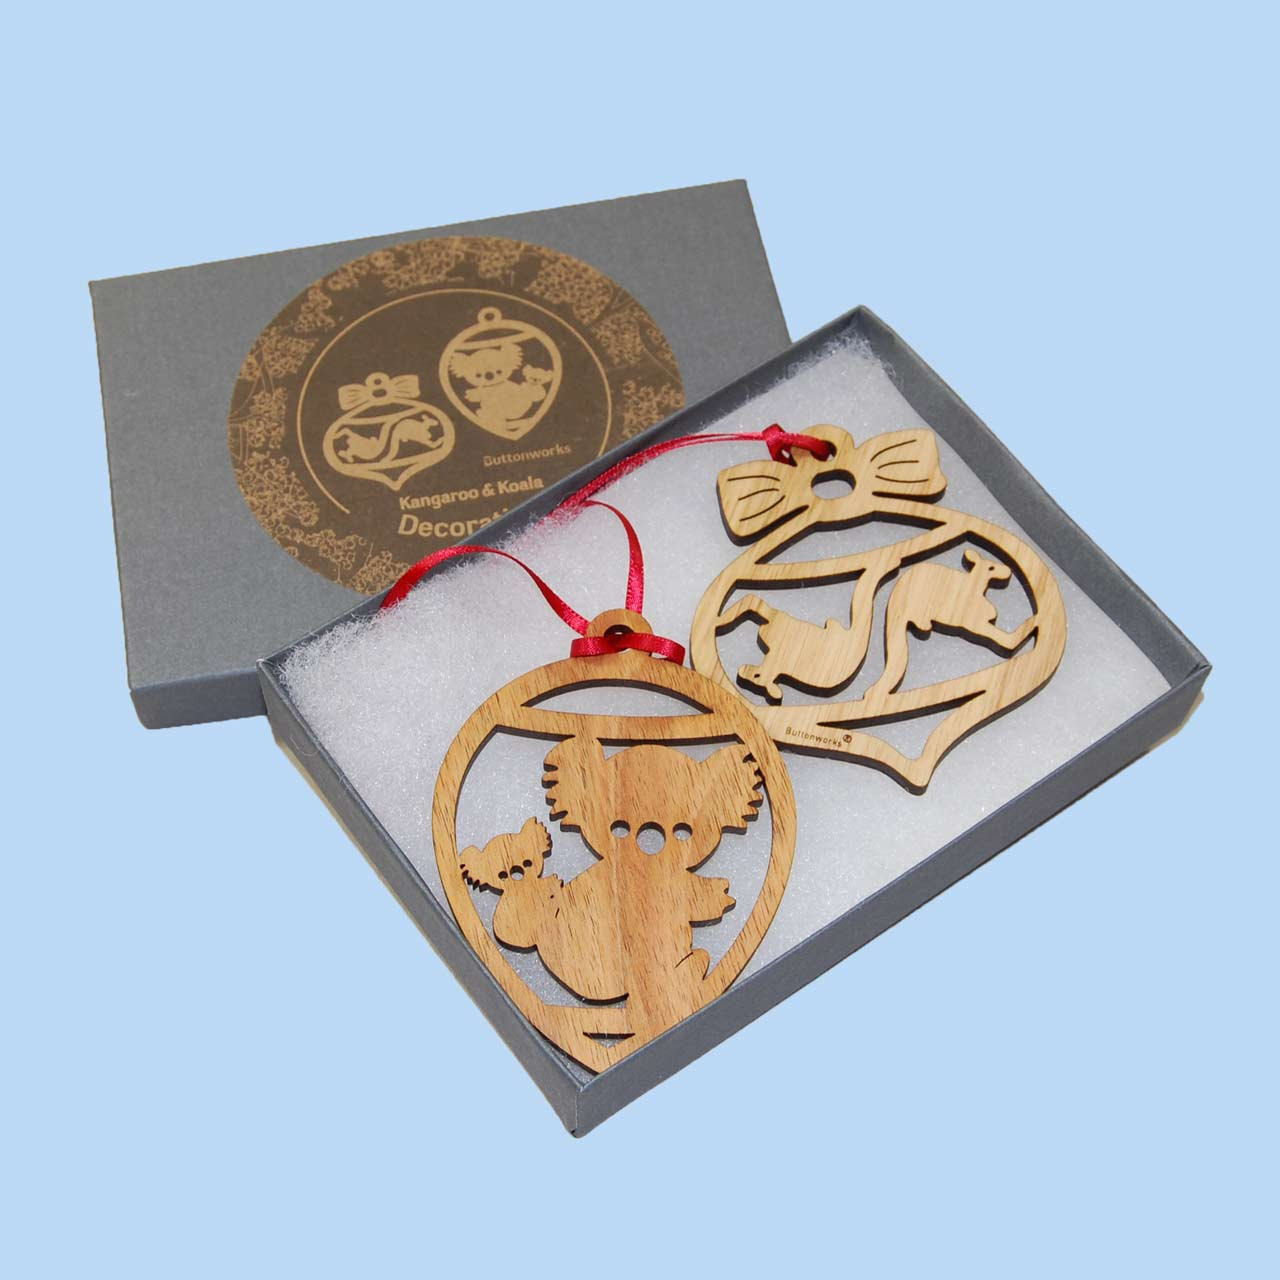 Wooden Christmas Decorations Gifts And Souvenirs